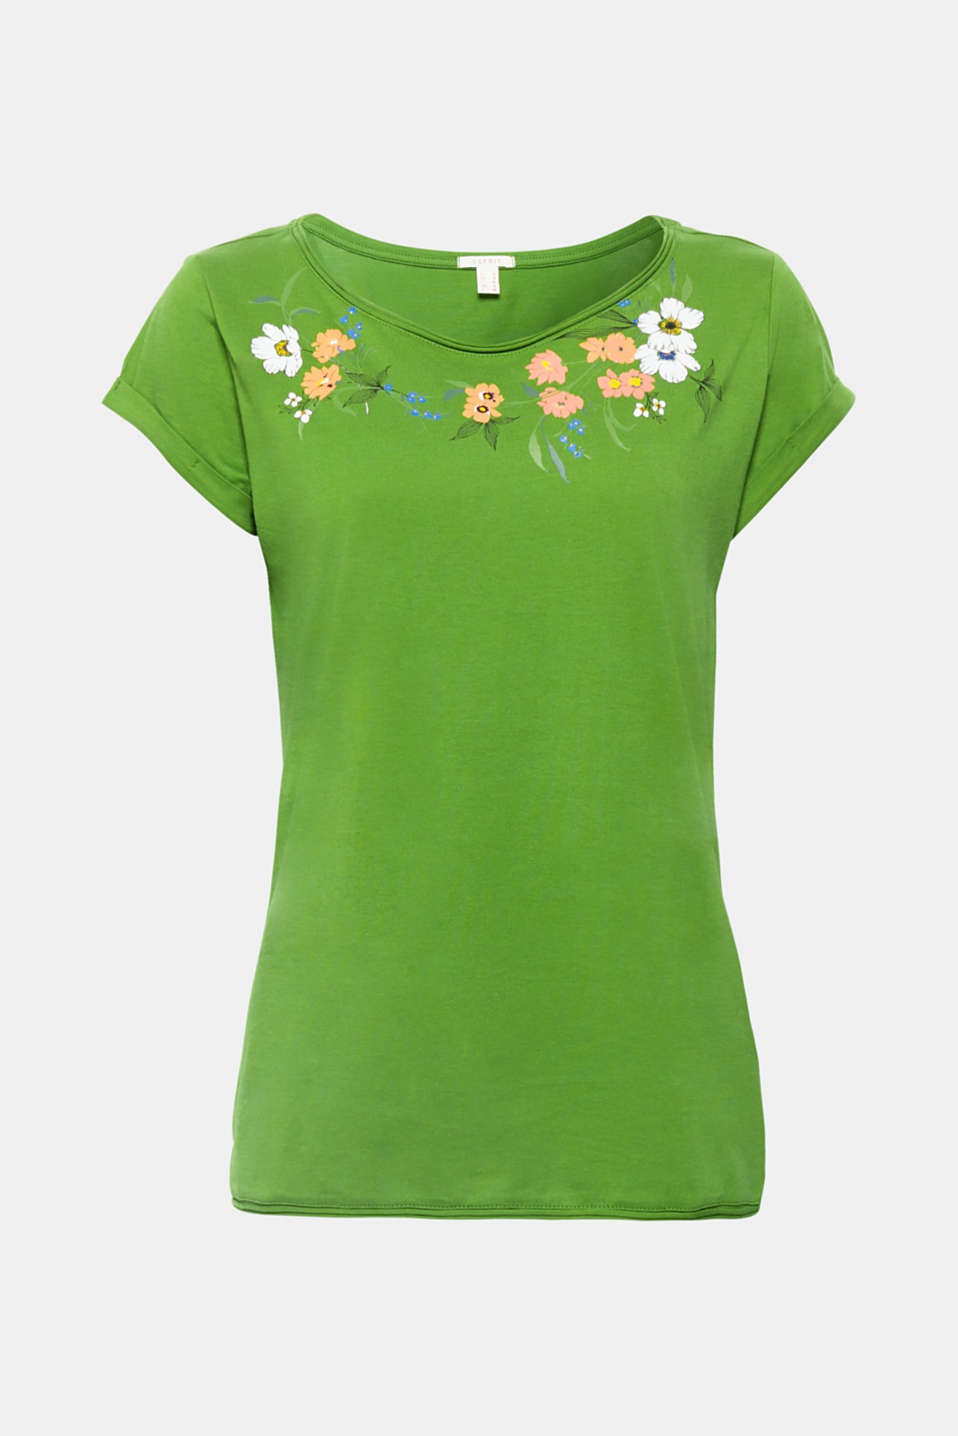 The romantic floral print decorating the neckline of this pure cotton T-shirt looks really pretty and feminine.